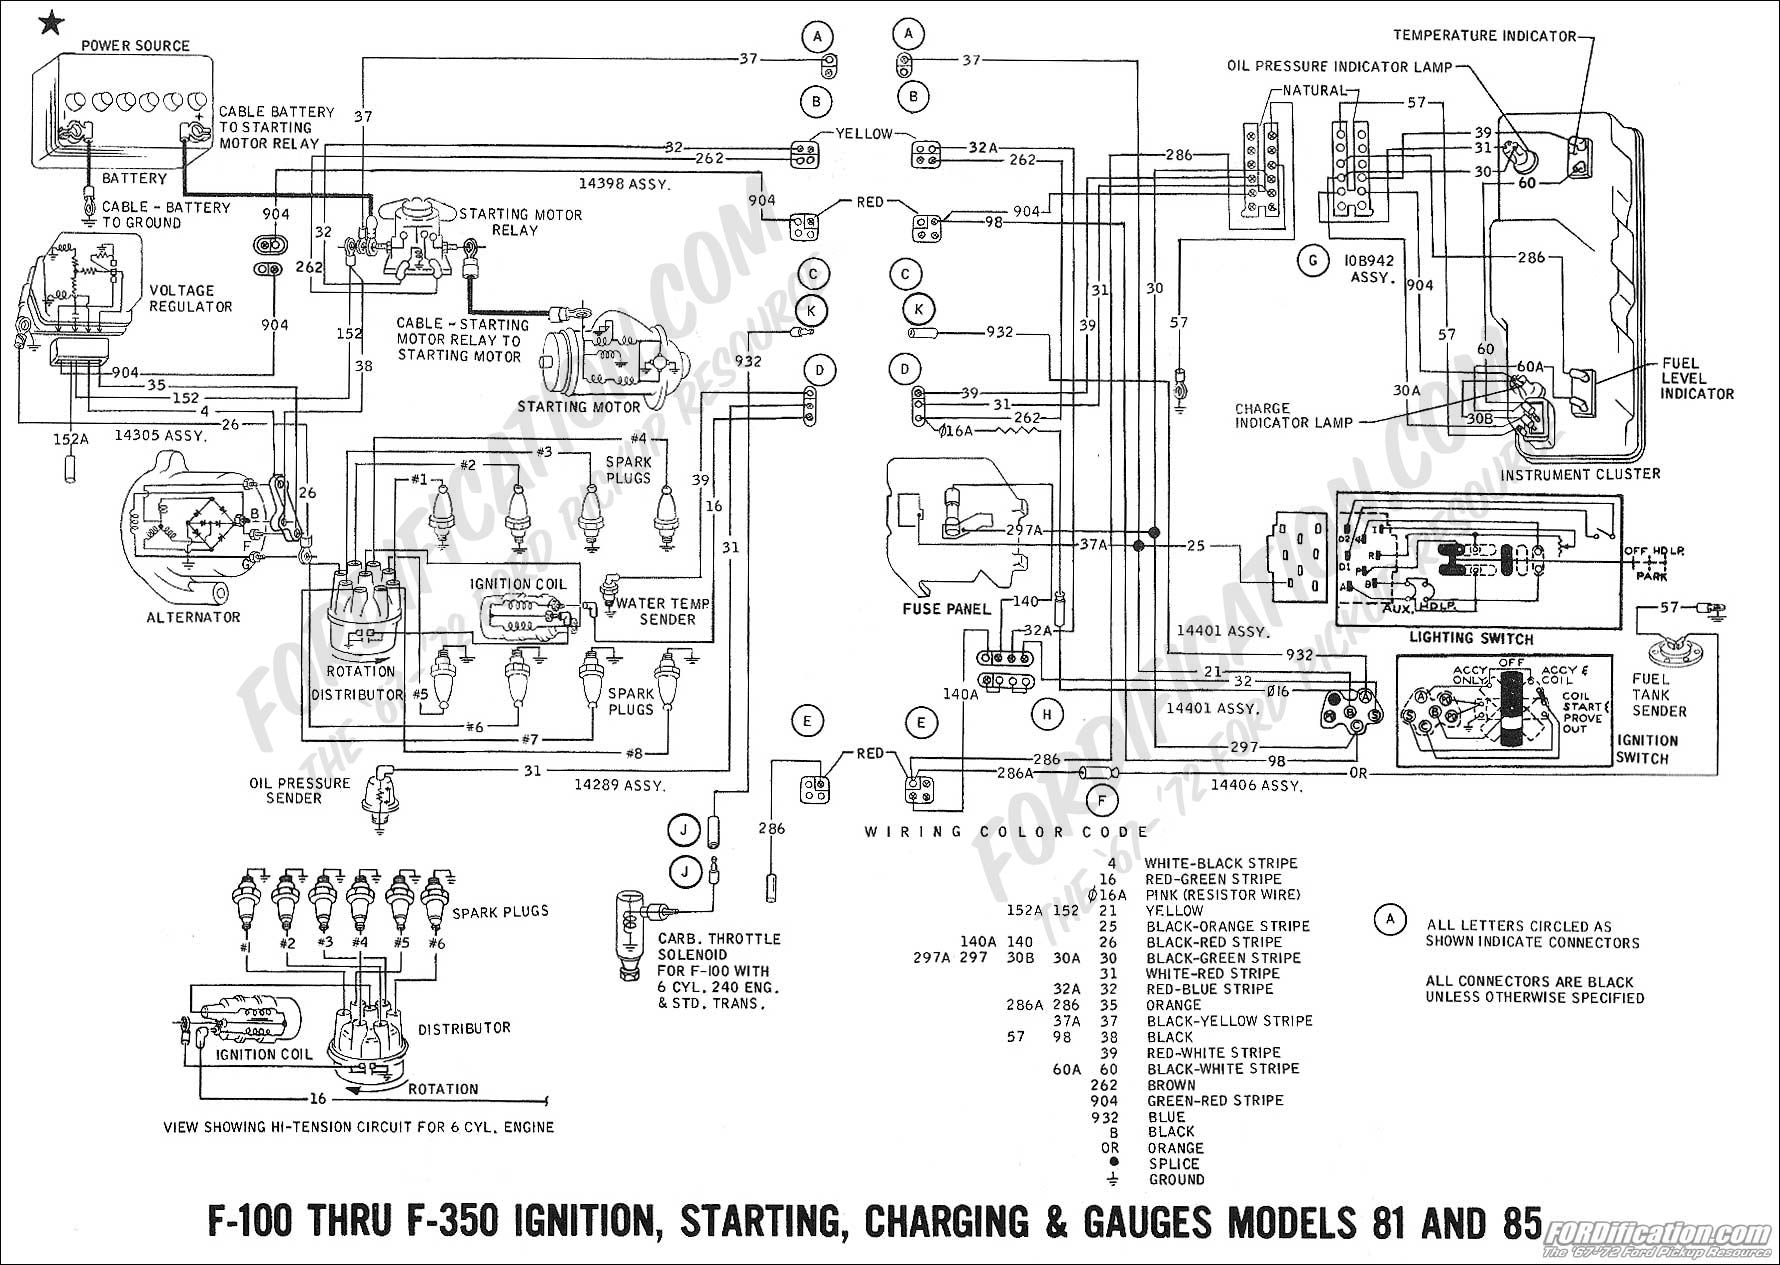 wire diagram 2004 ford f350 xl